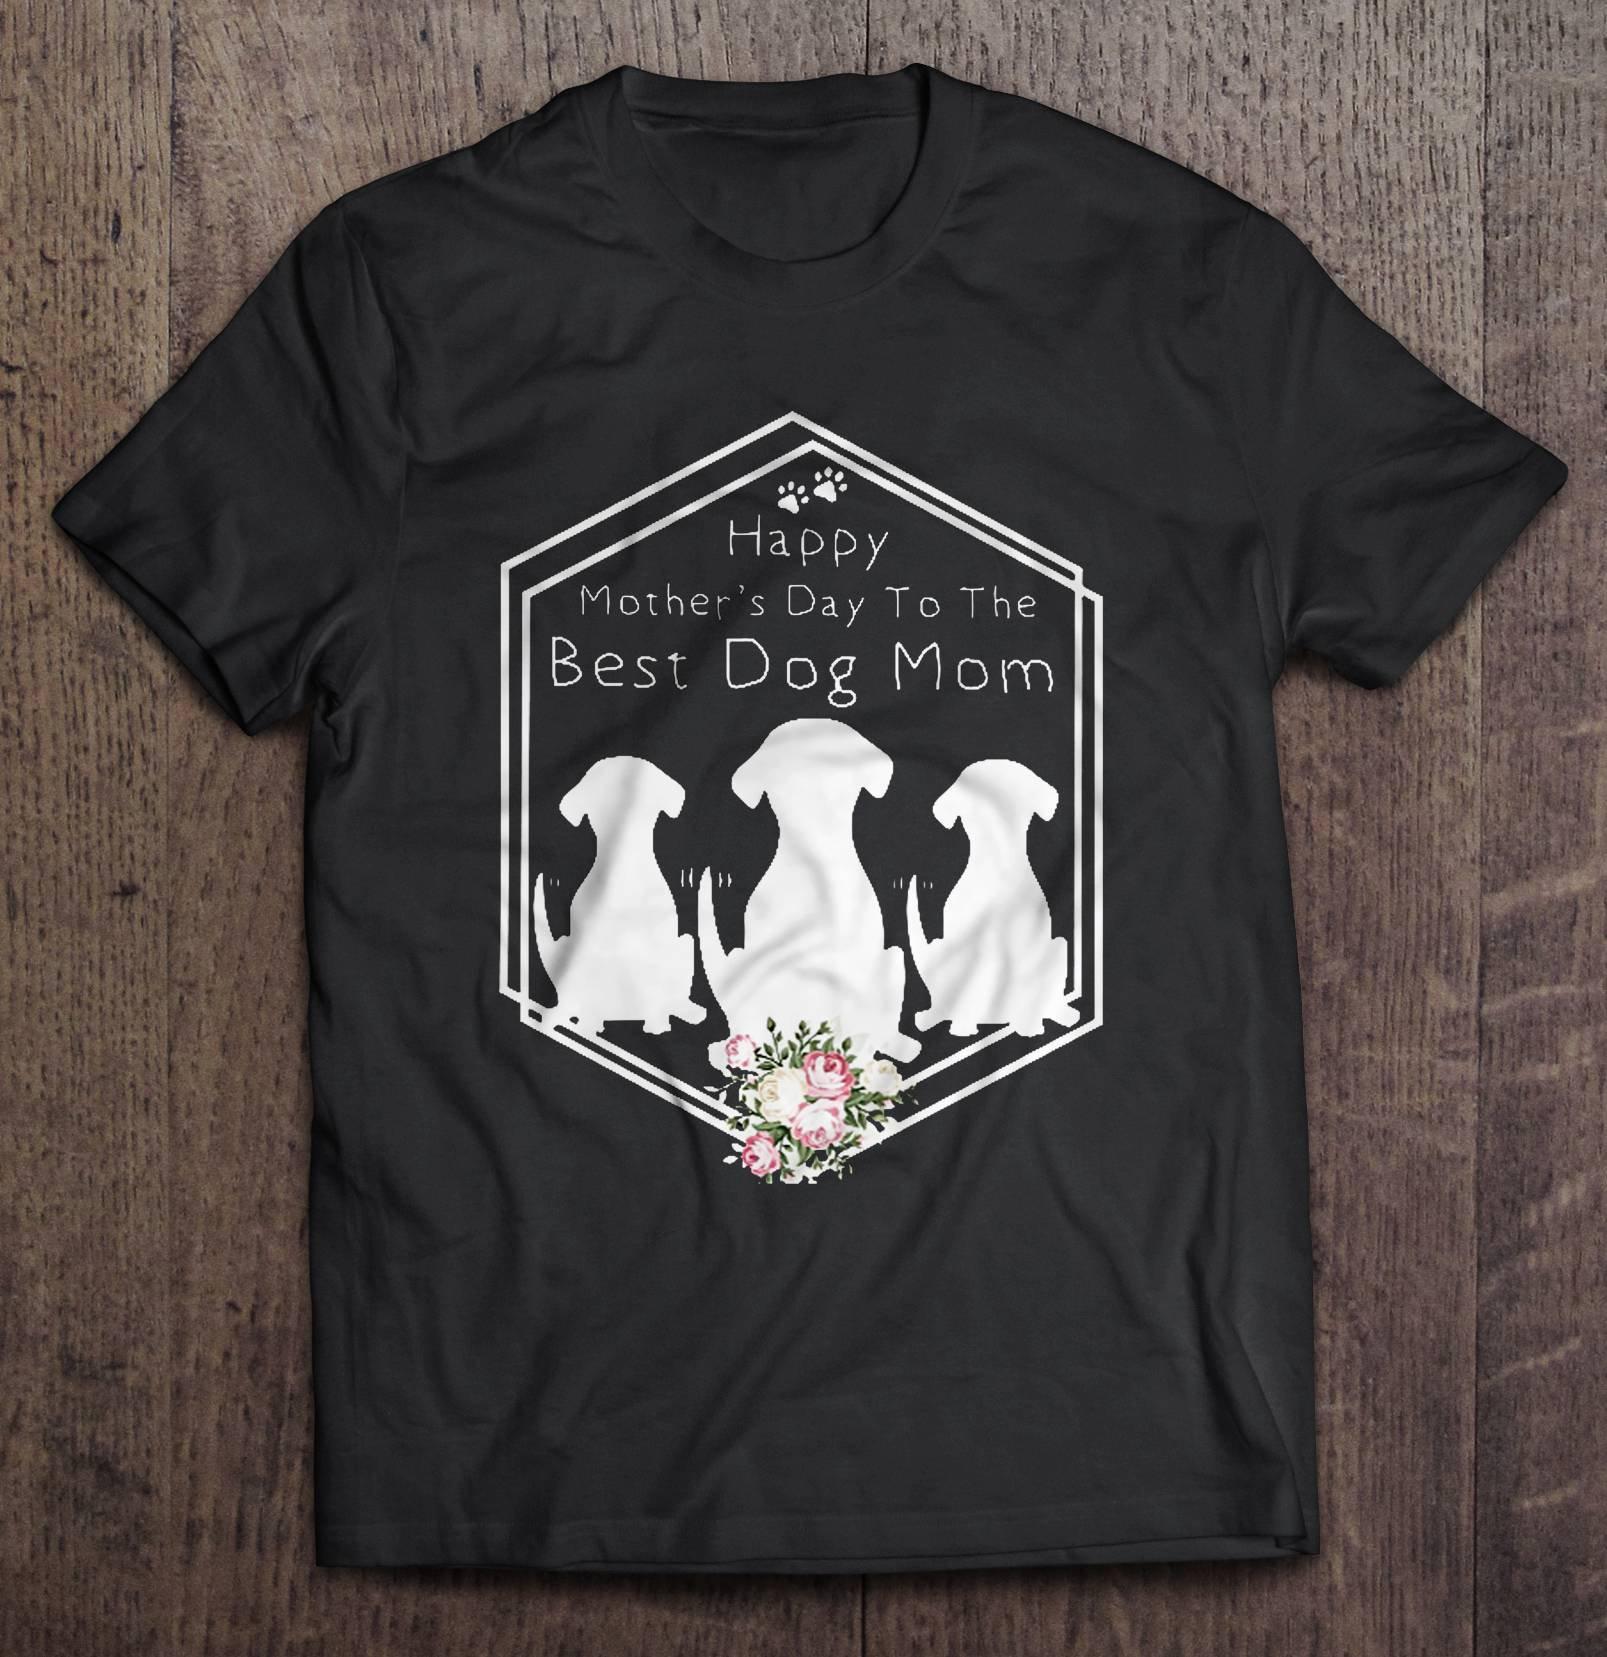 A special design on Mother's Day for women having dogs